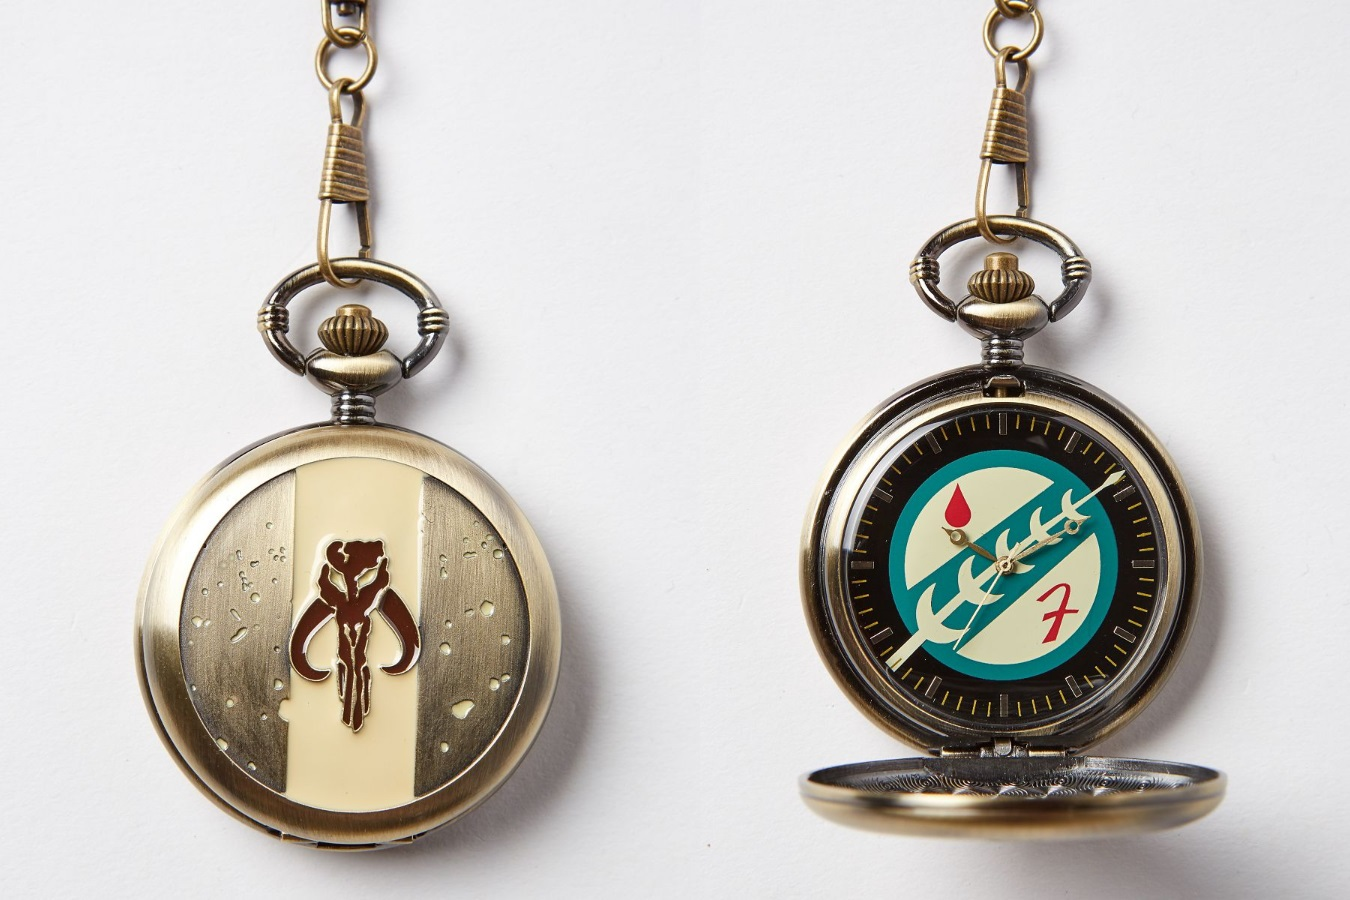 Star Wars Mandalore Pocket Watch